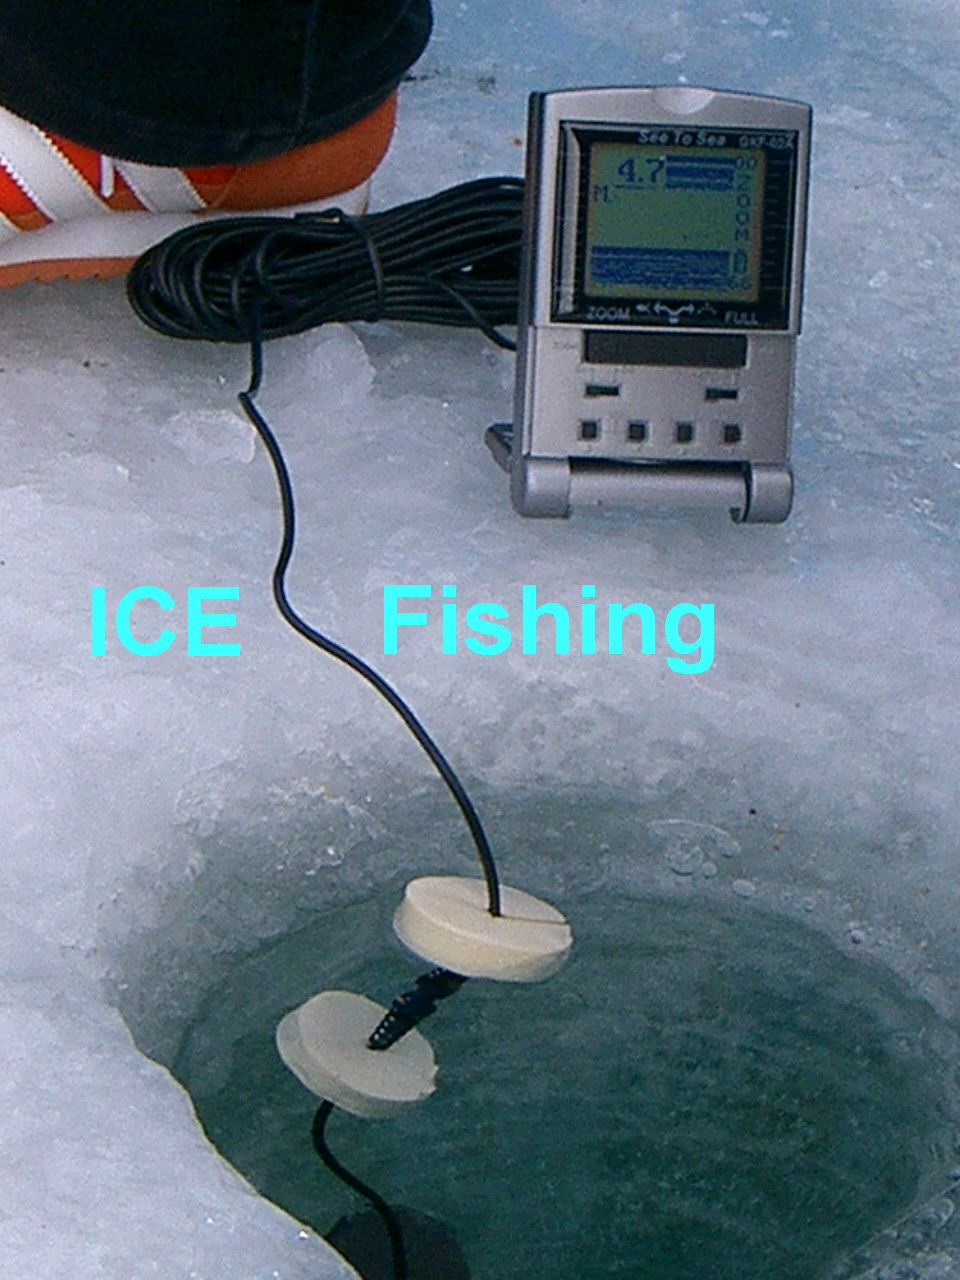 ice fishing with fishfinder gkf 02a